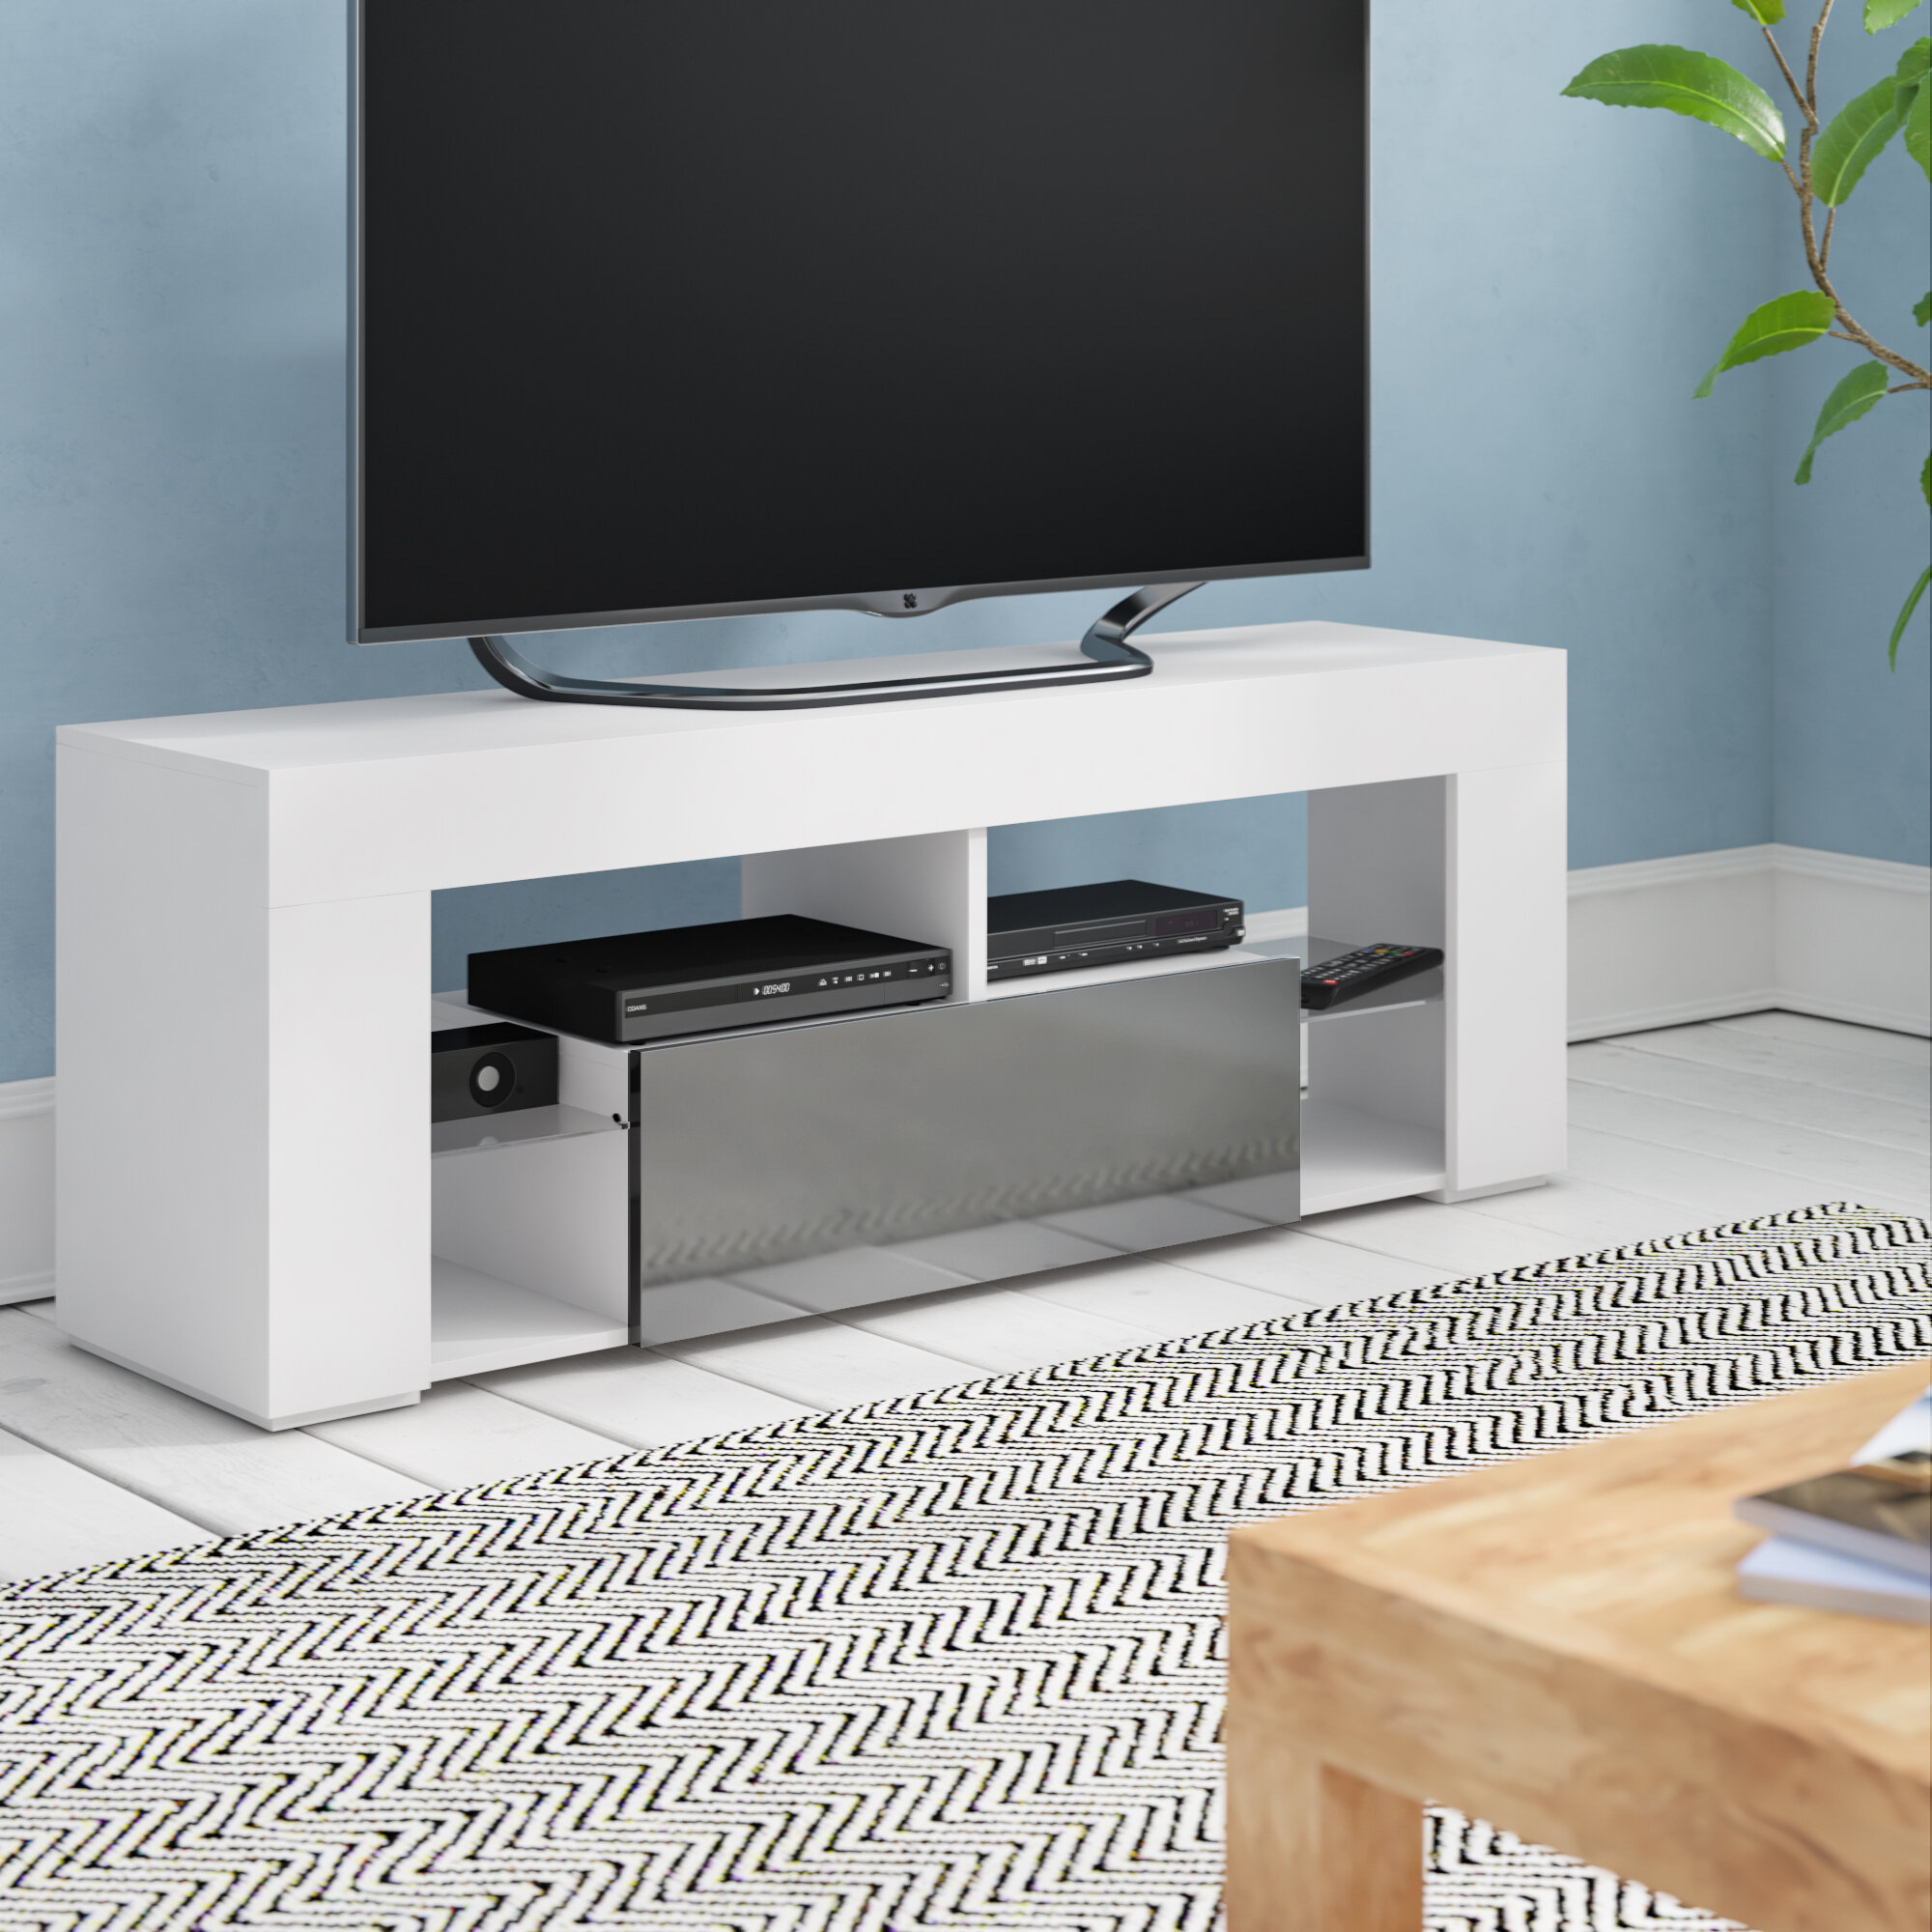 Selsey Living Bianko Tv Stand For Tvs Up To 50 Reviews Wayfair Co Uk